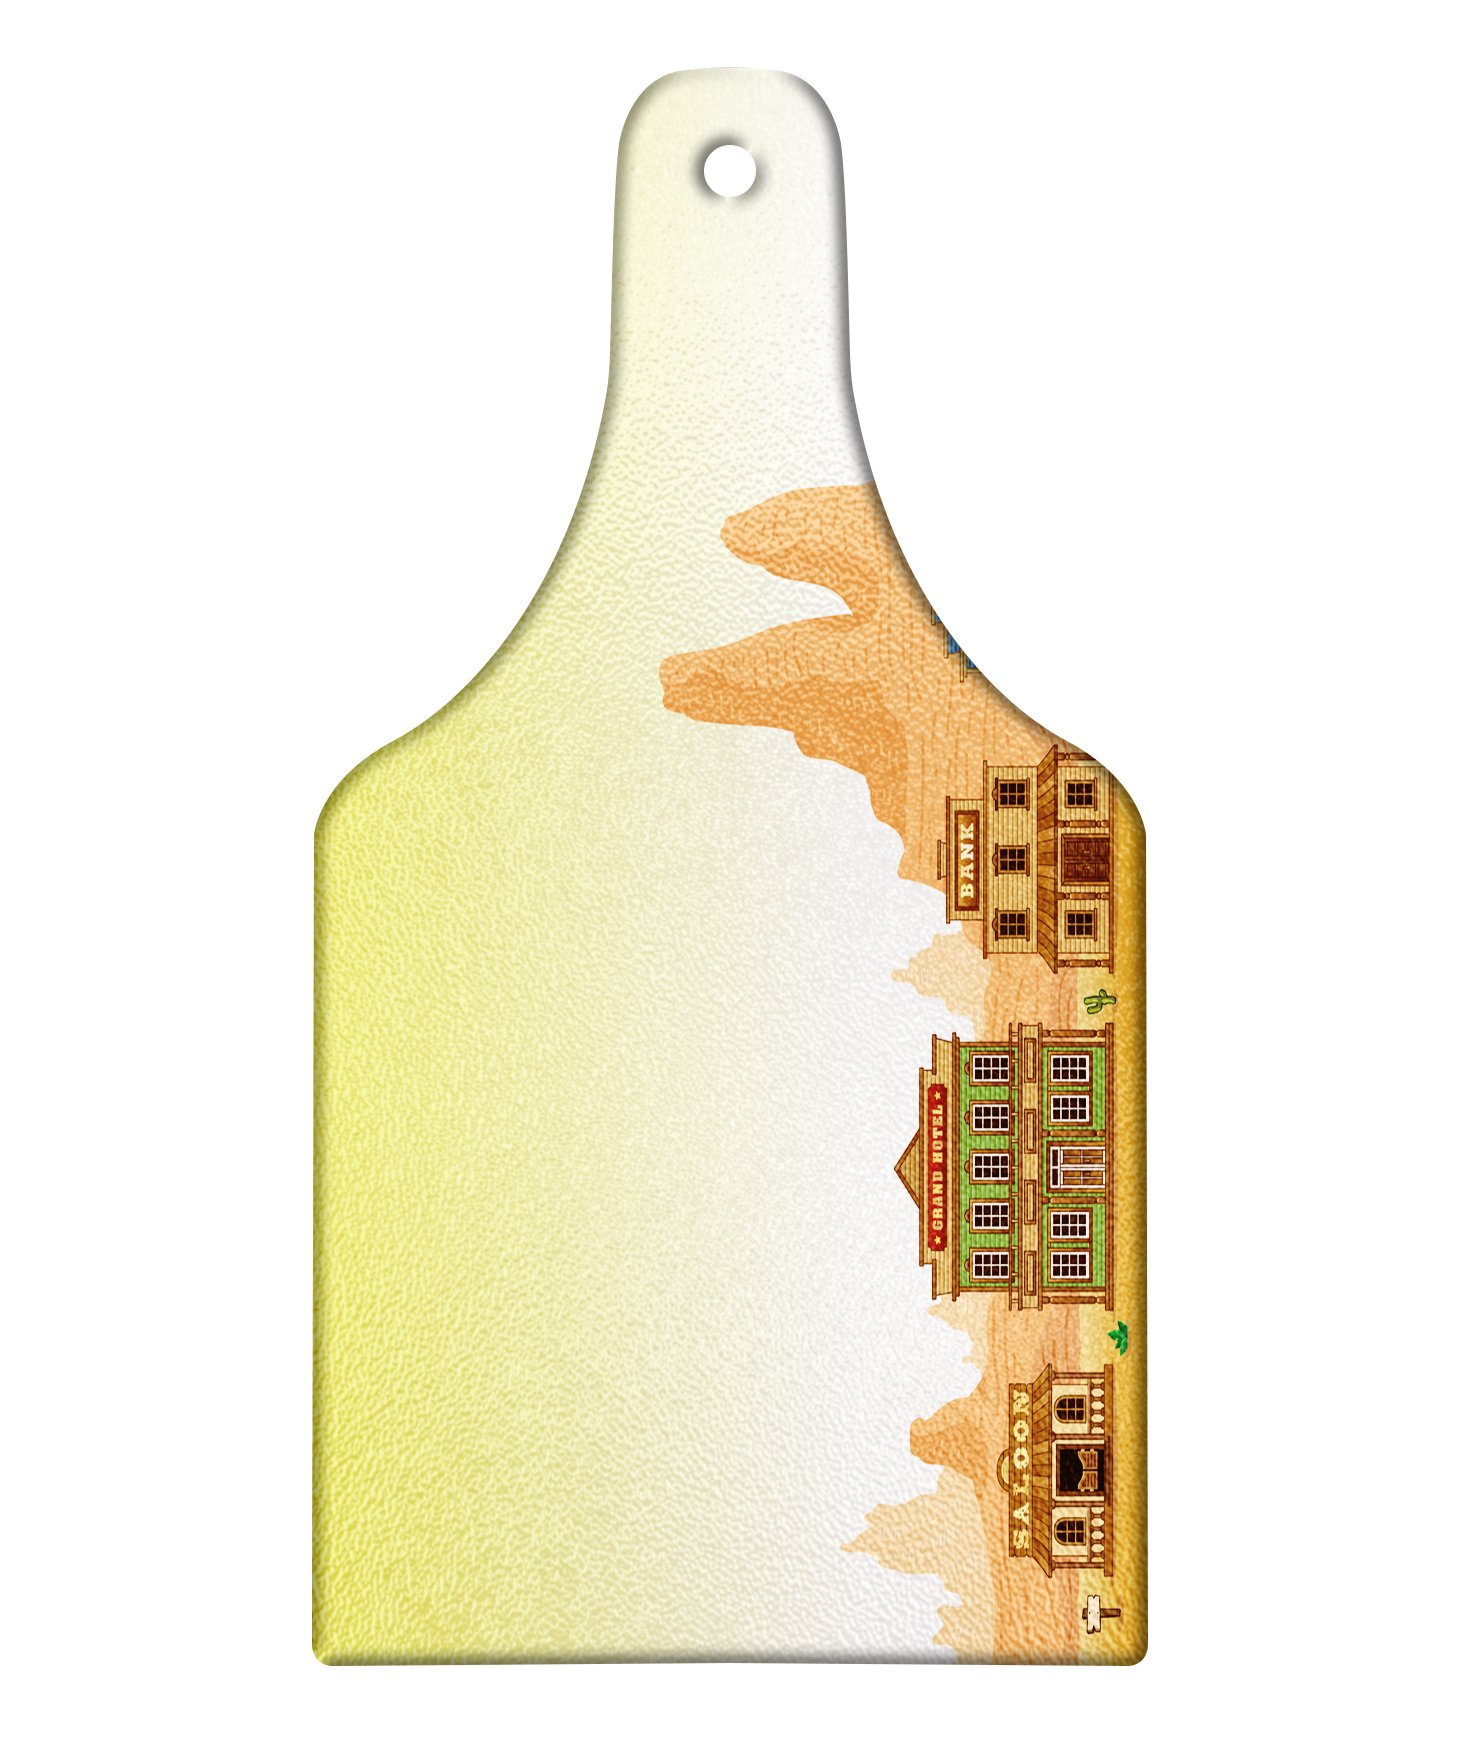 Lunarable Western Cutting Board, Wild West Town Architecture of Hotel Sheriff Bank Cafeteria Print, Decorative Tempered Glass Cutting and Serving Board, Wine Bottle Shape, Pale Yellow Peach Sand Brown